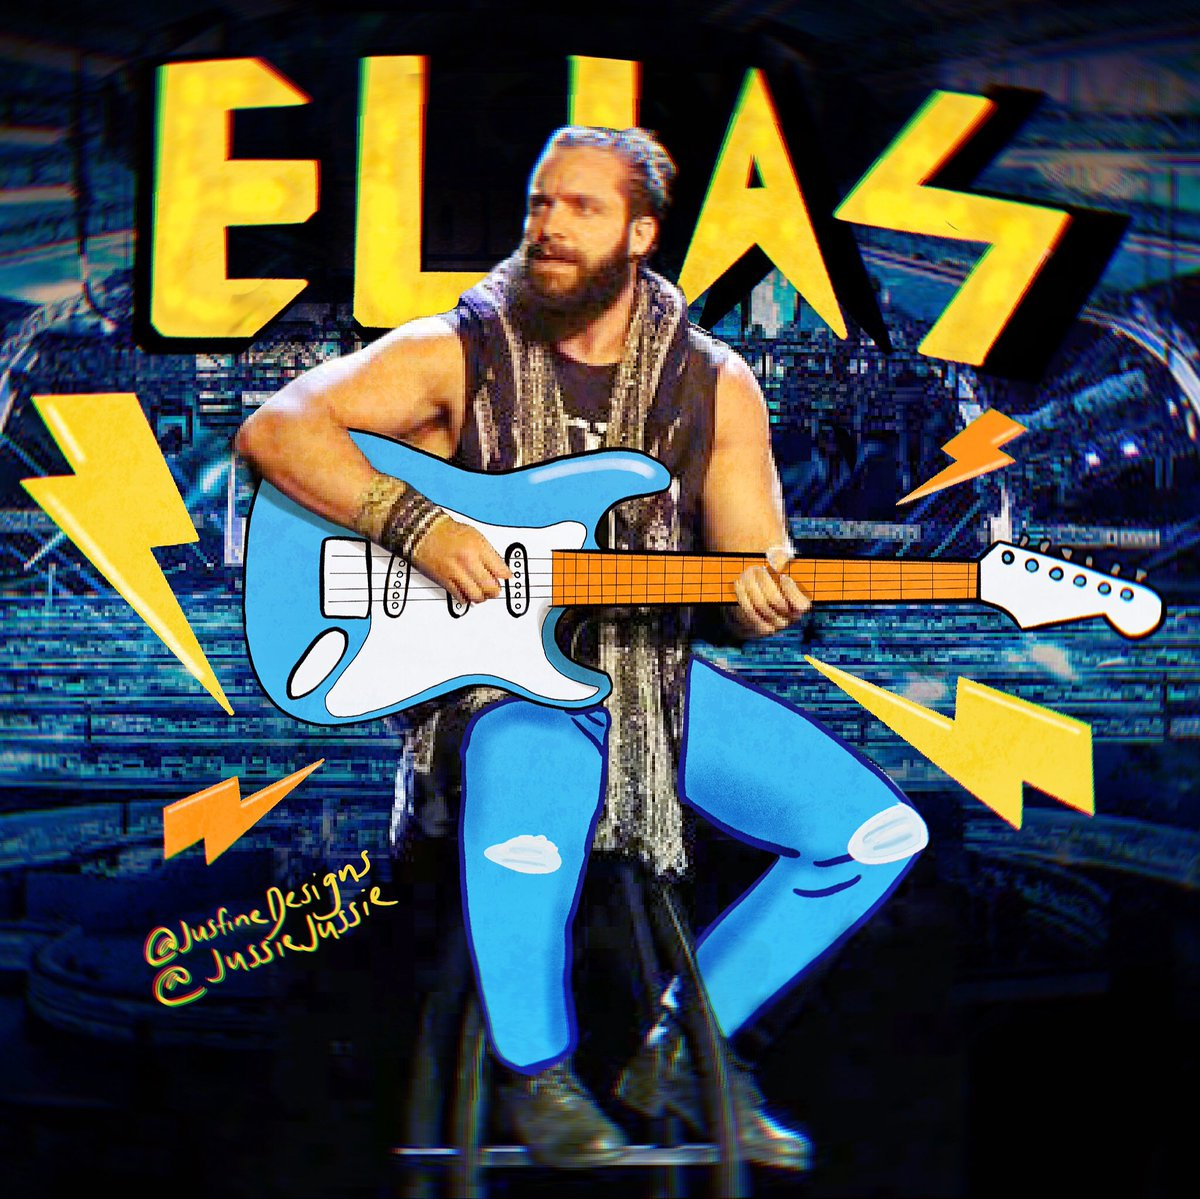 I really miss @iameliaswwe and I await his triumph return soon, hopefully in the Thunderdome! I made this illustration piece how I would imagine him rocking the place down with his electric guitar. ⚡️⚡️ 🎸 https://t.co/Utp7i6twIn